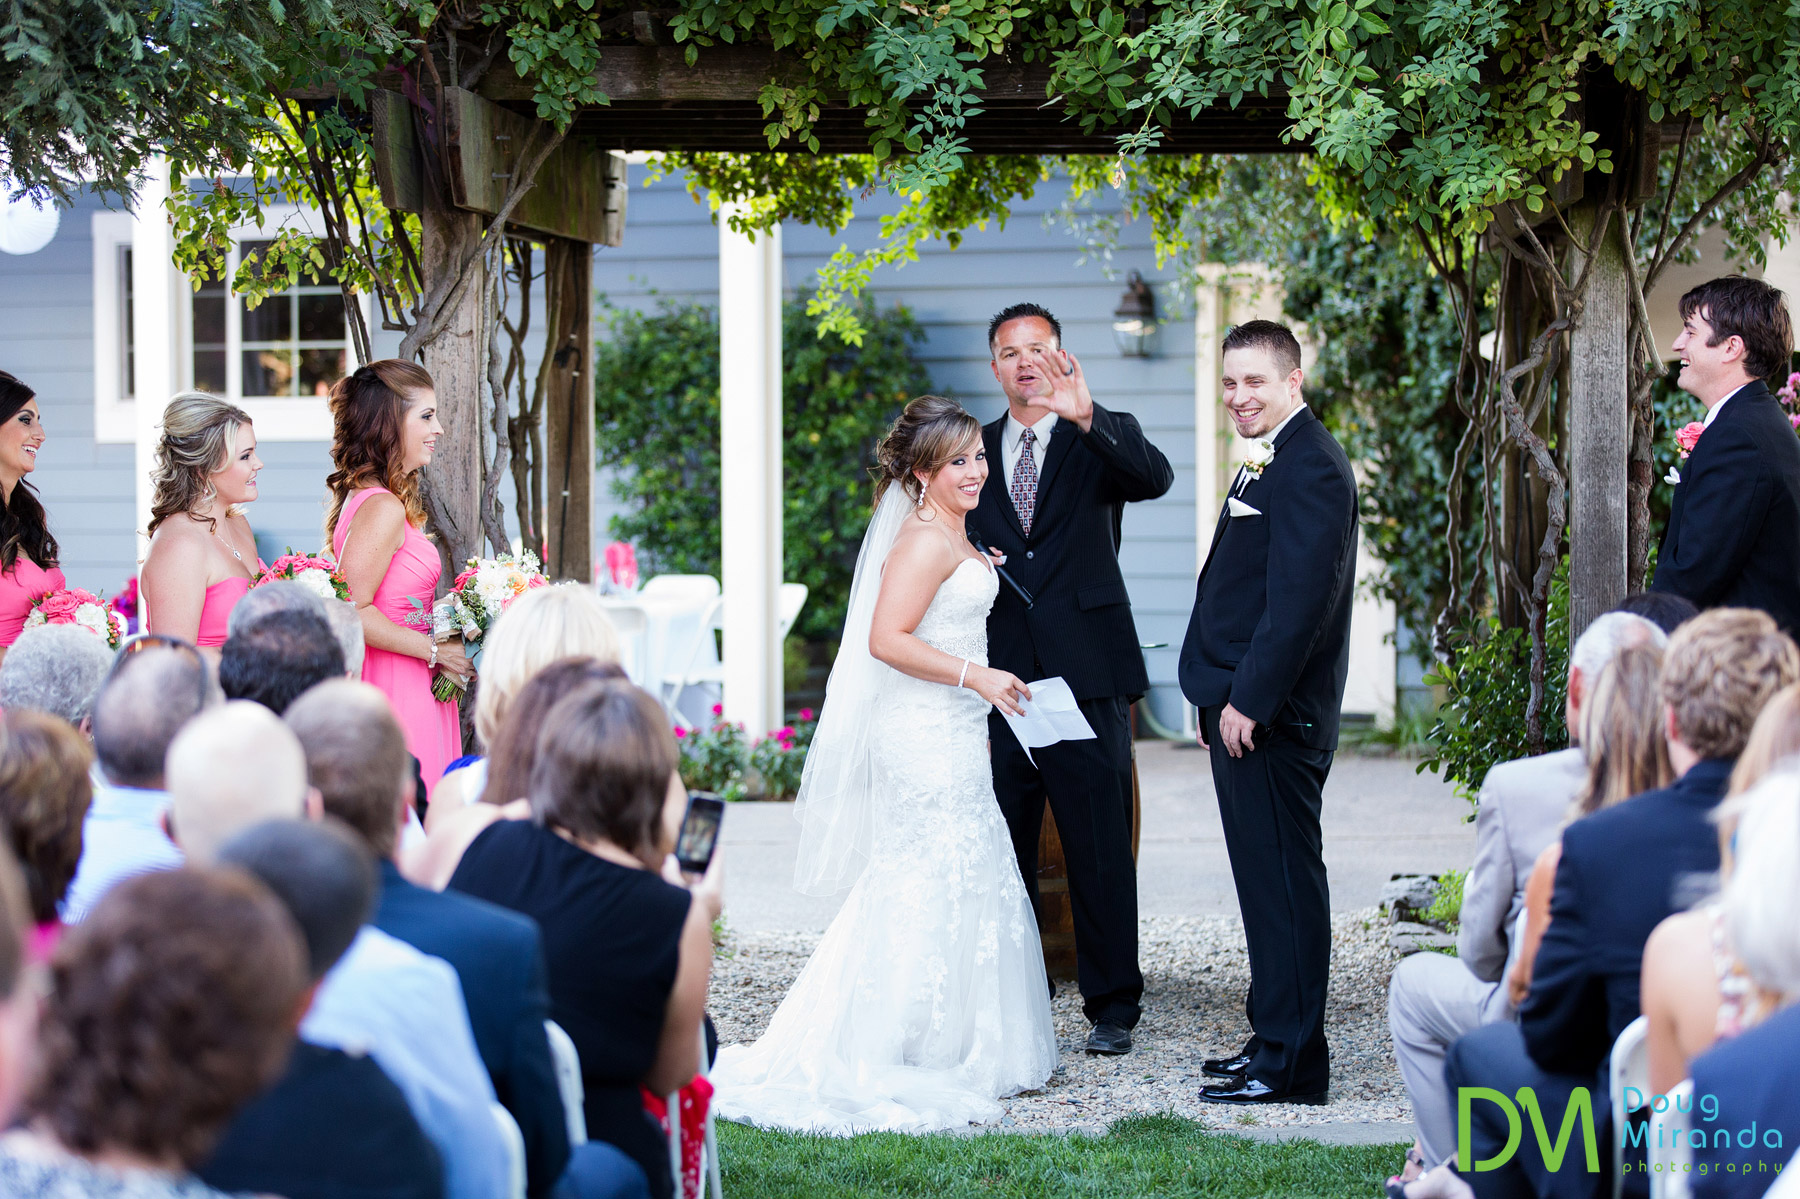 harmony wynelands wedding ceremony